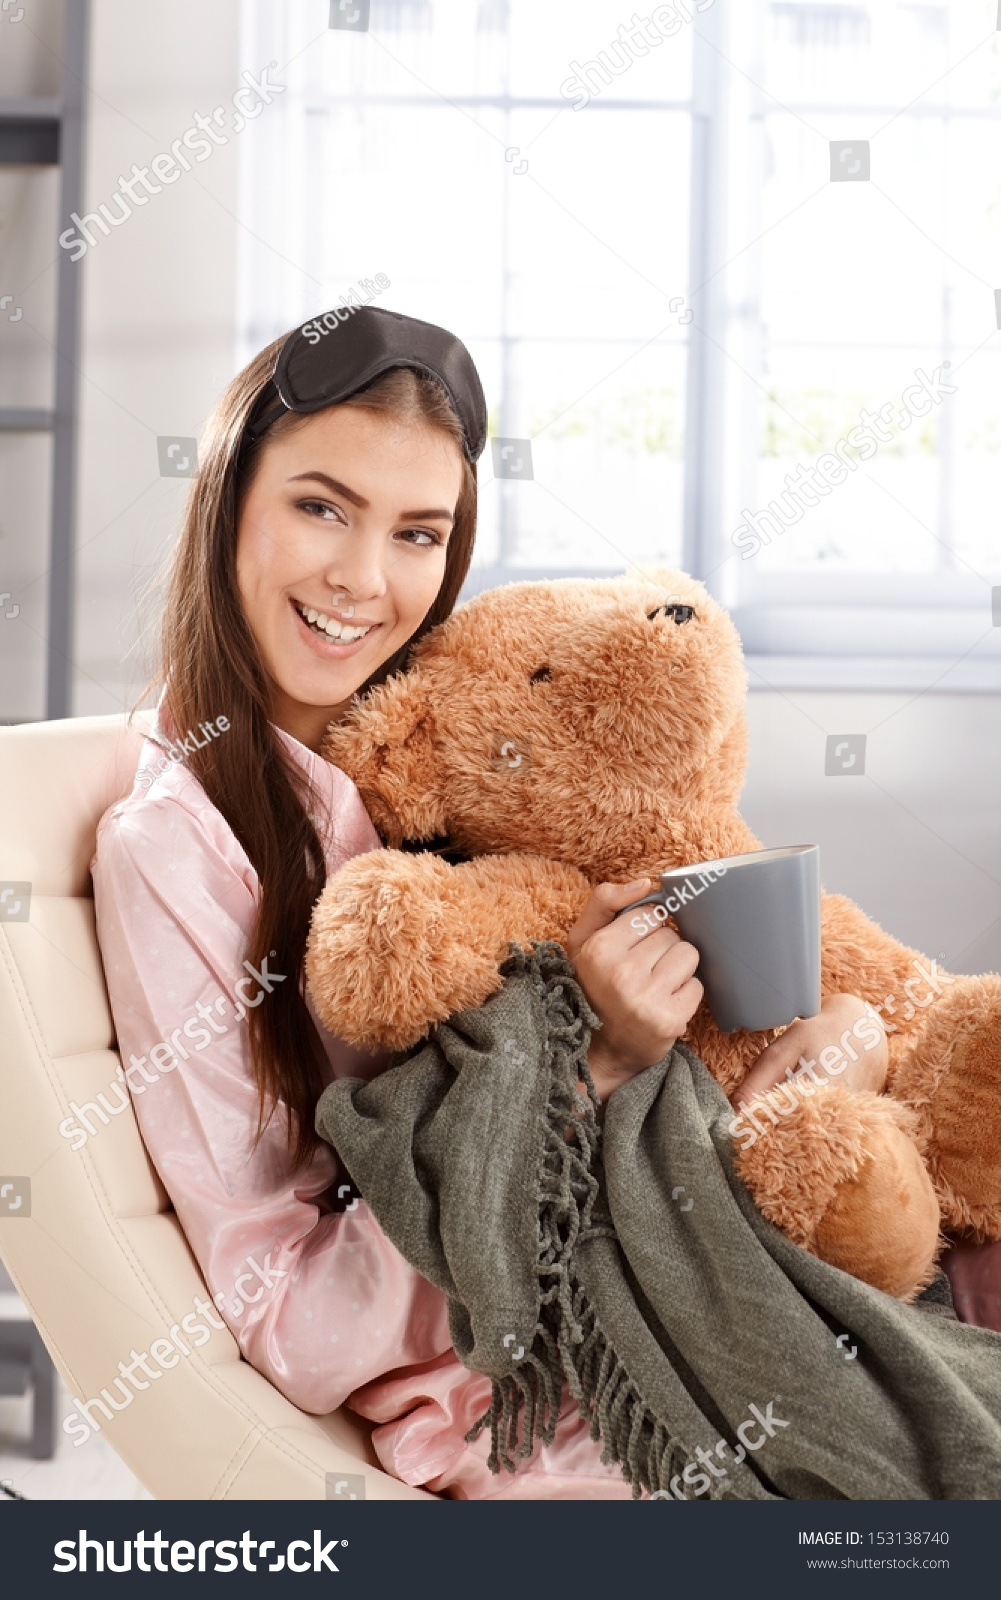 0e7908169b Morning portrait of laughing woman cuddling with teddy bear and blanket at  home